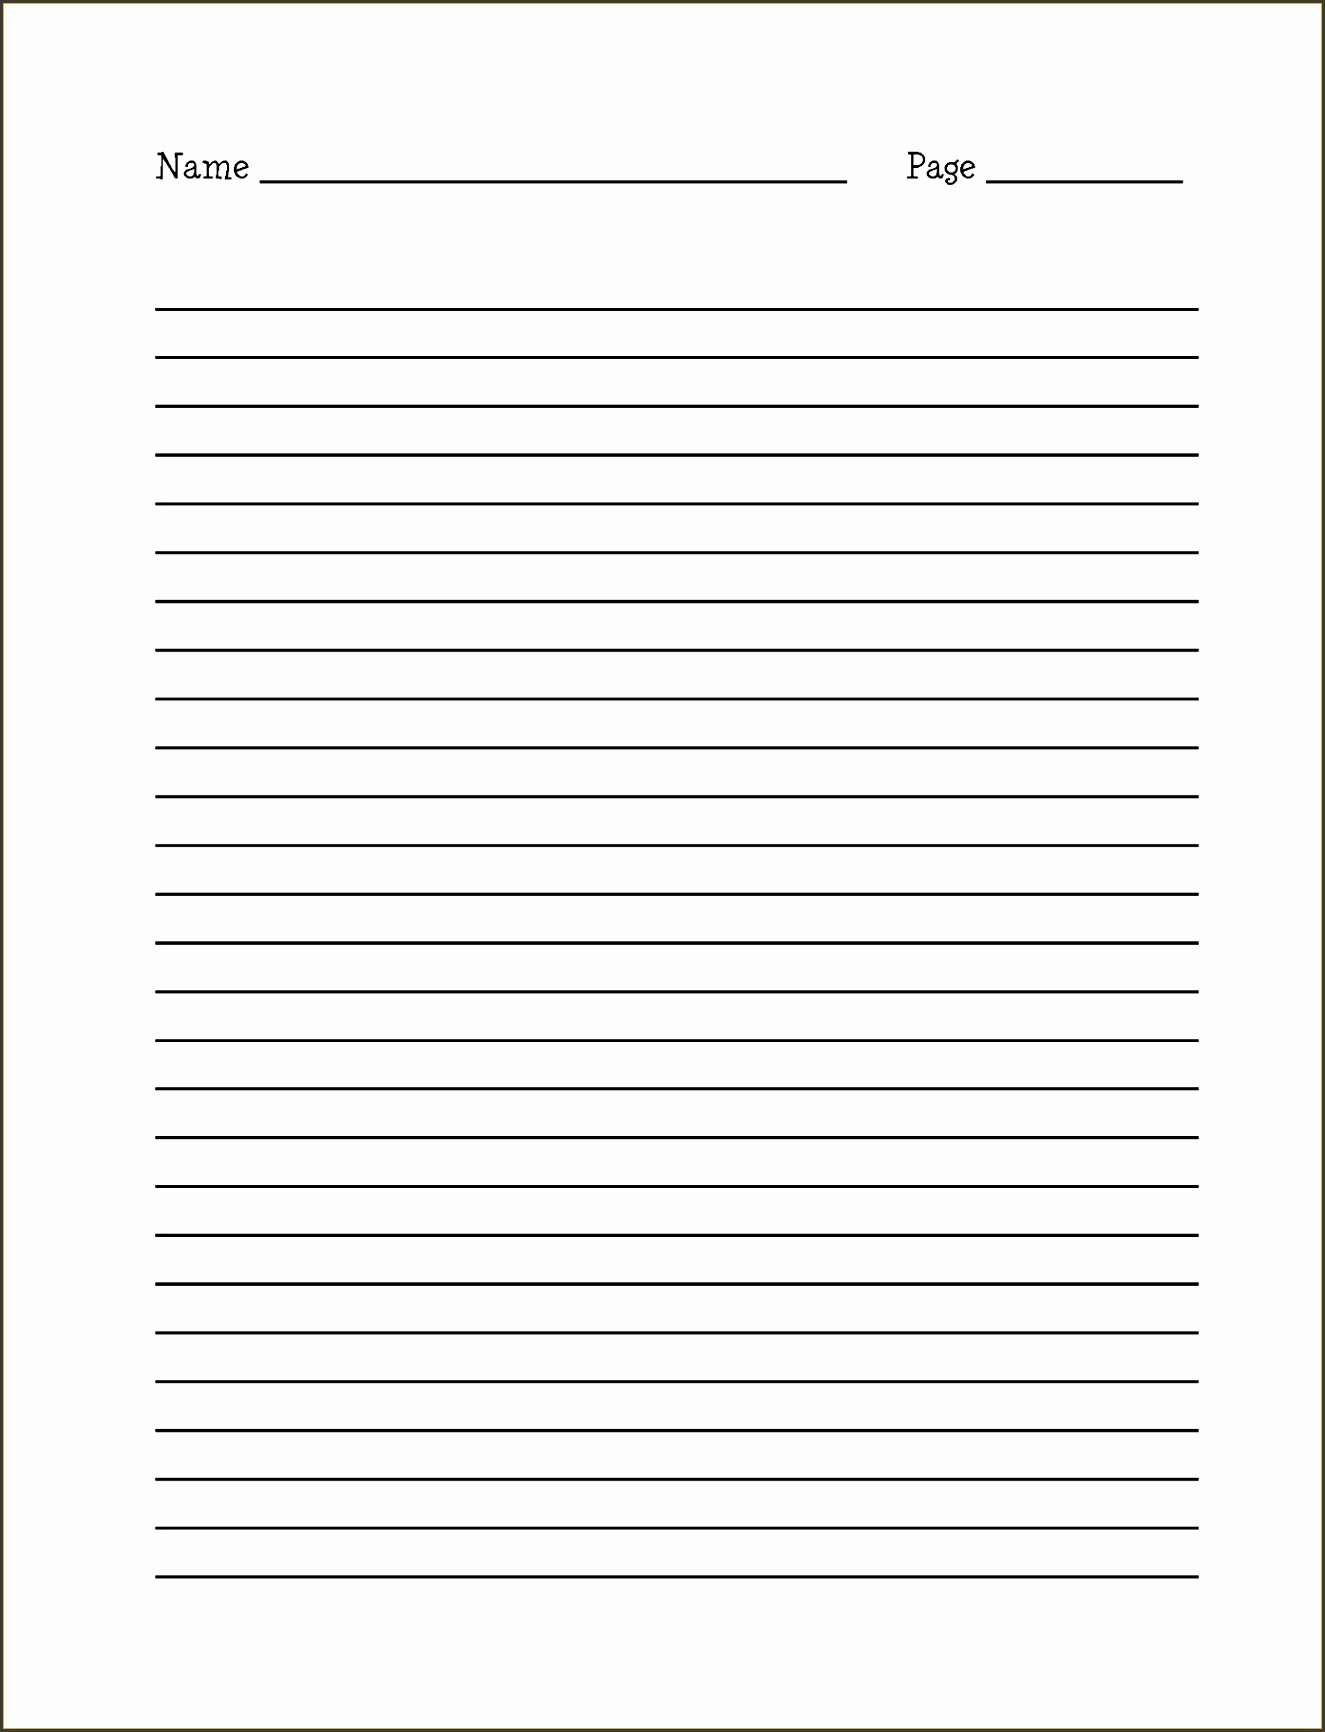 Lined Paper Template For Word General Manager Assistant Cover Letter Lined Notebook Paper Template Word Lined Paper For Writing For Cute Writing Paper